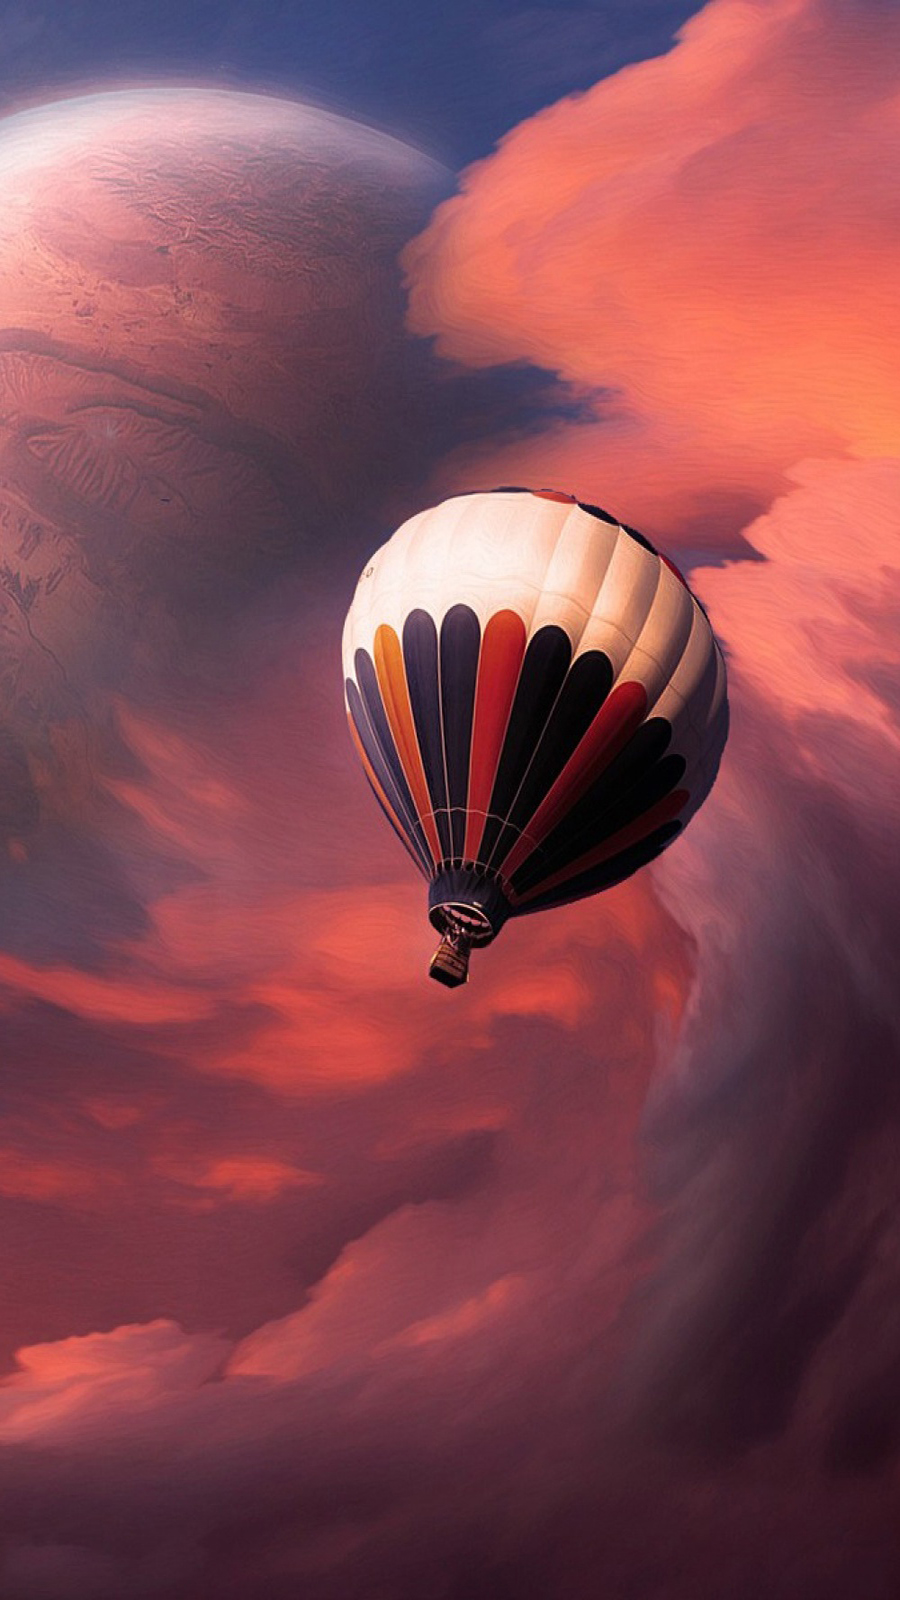 Air Baloon Distant Planets Illustration Wallpapers